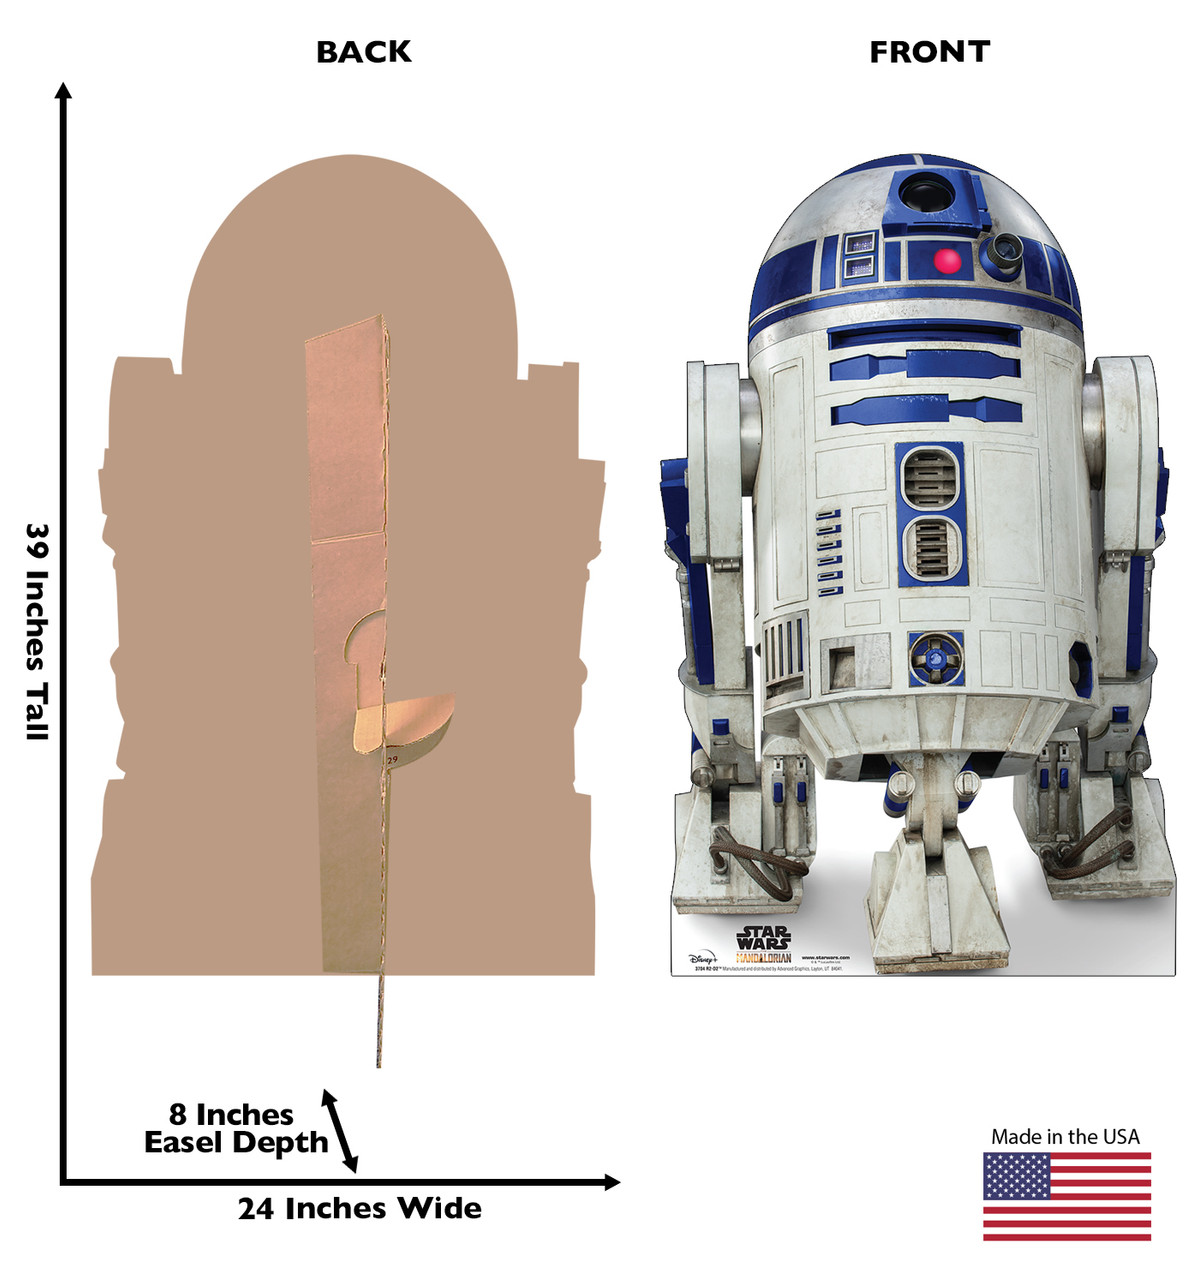 Life-size cardboard standee of R2-D2 from the Mandalorian season 2 with back and front dimensions.